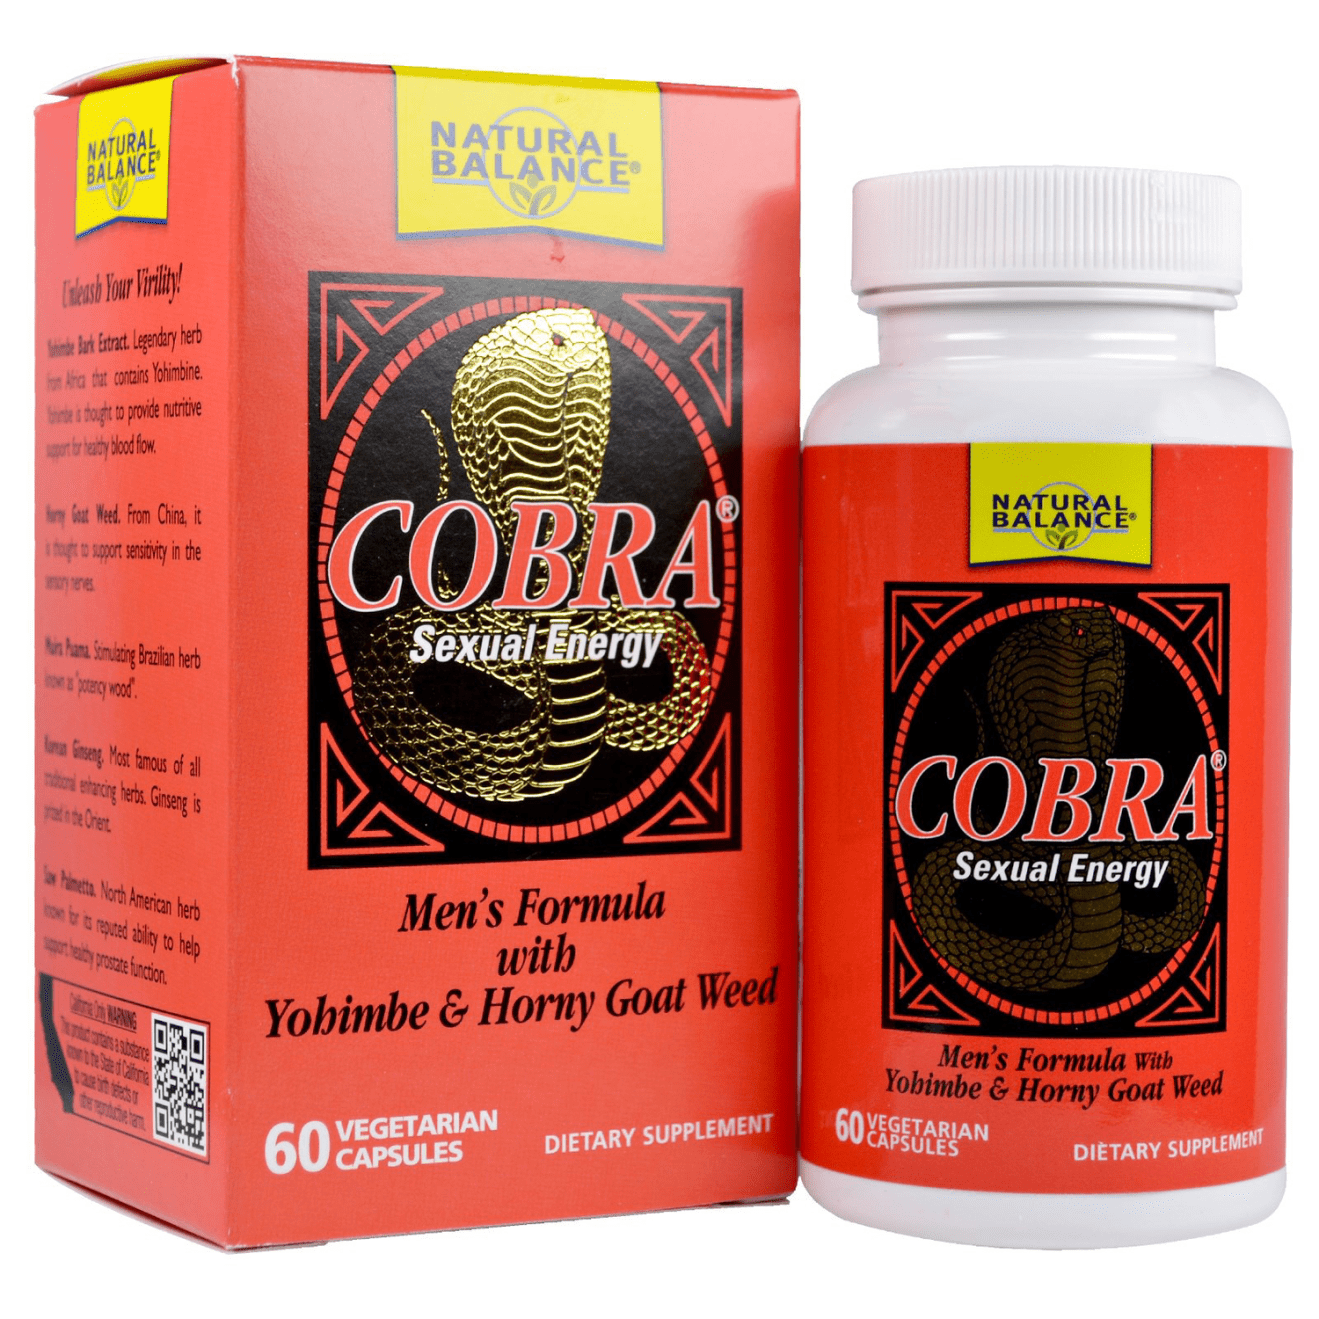 Natural Balance-Cobra for Men